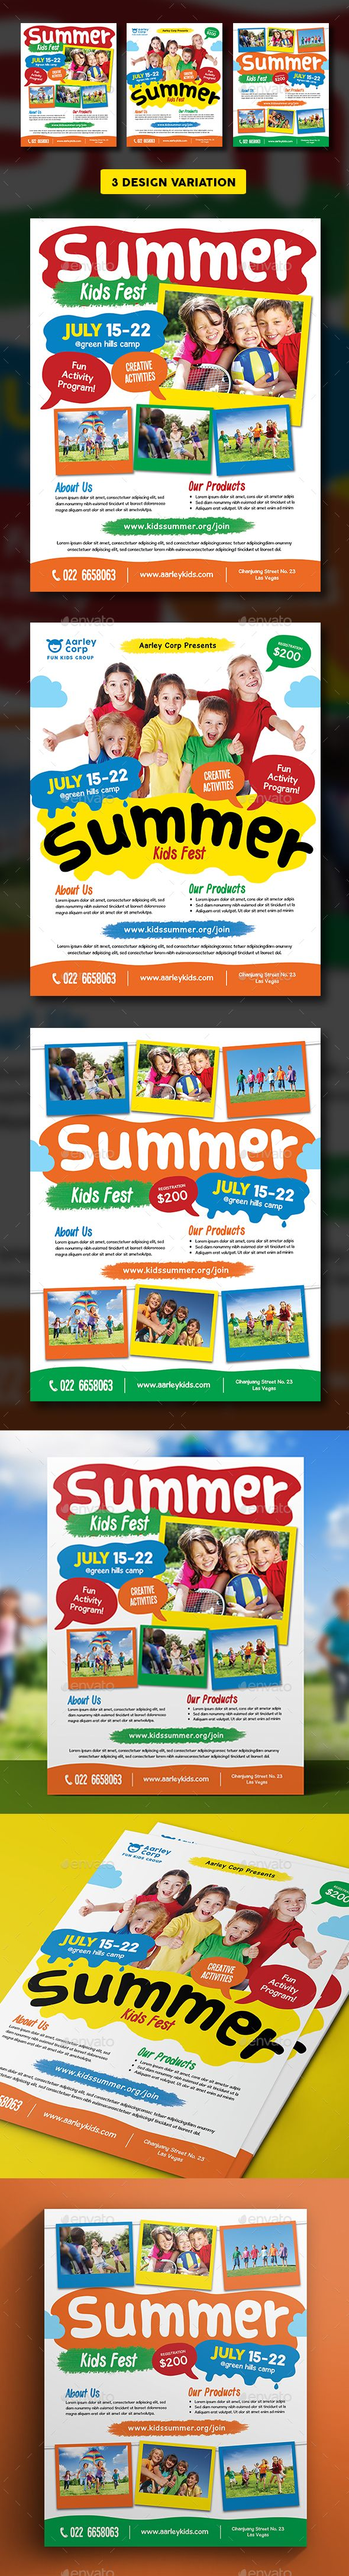 kids summer camp flyer psd template sport class download https